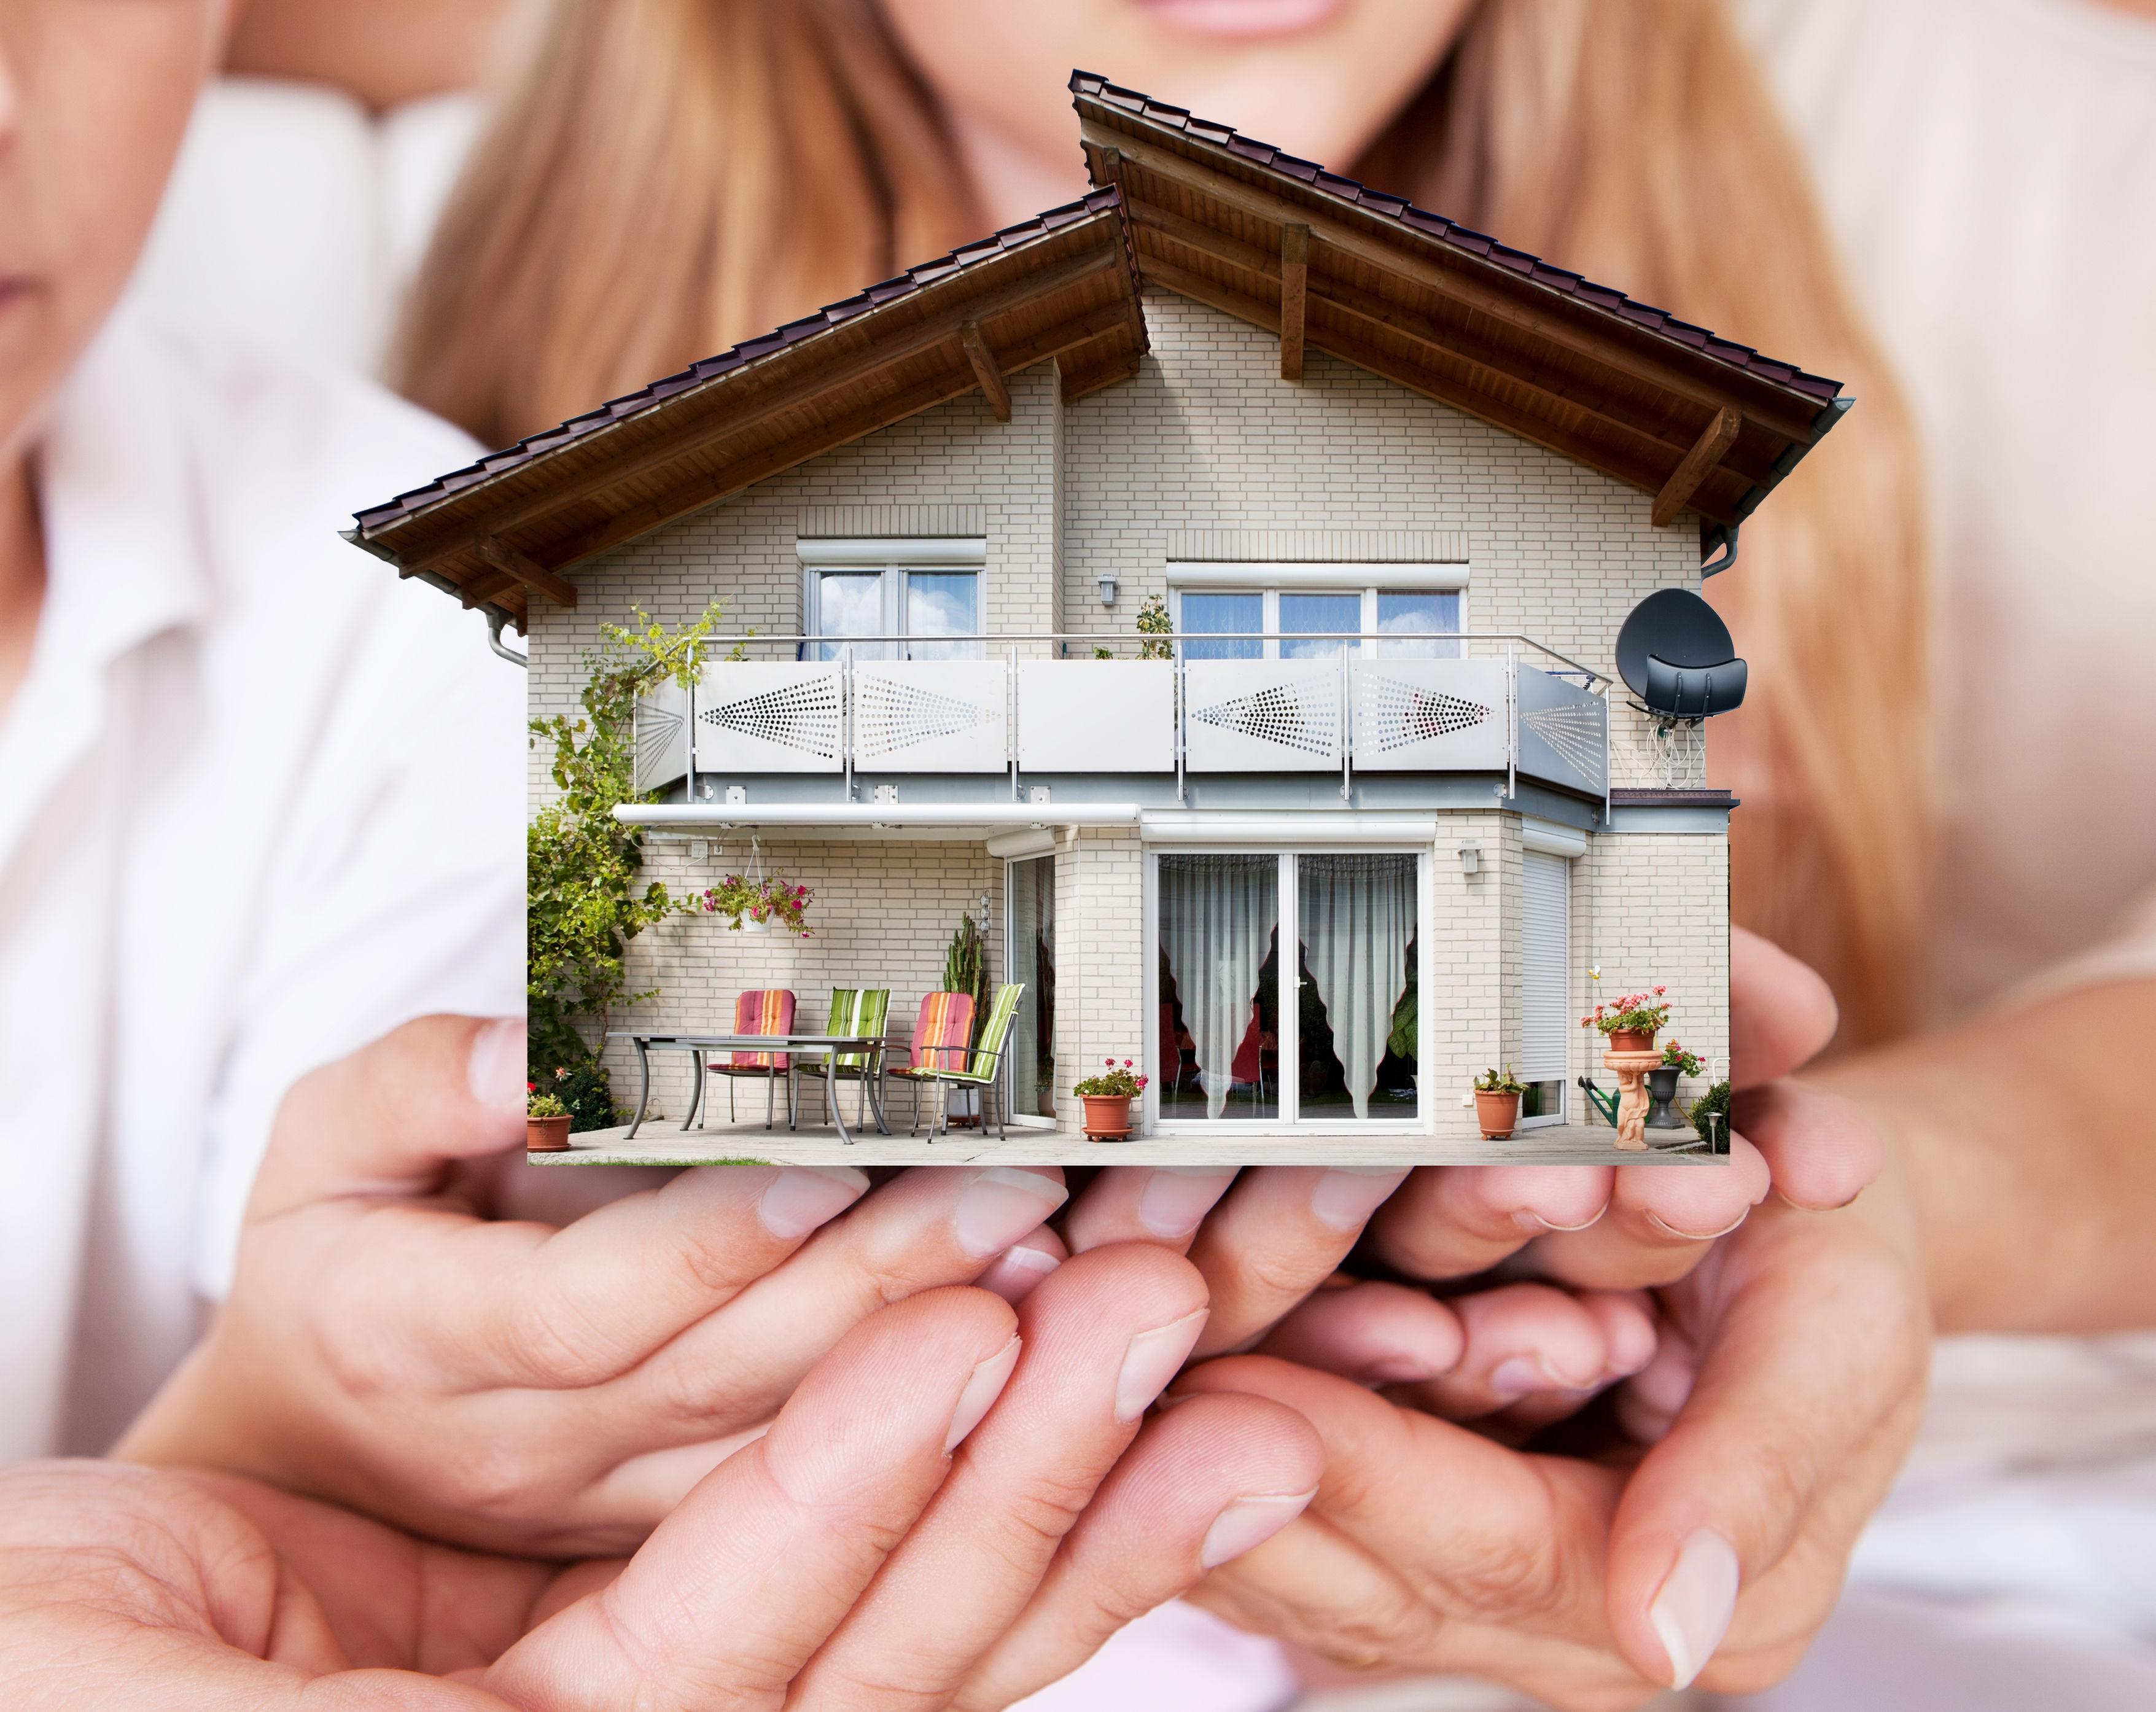 close-up of family holding the house model together